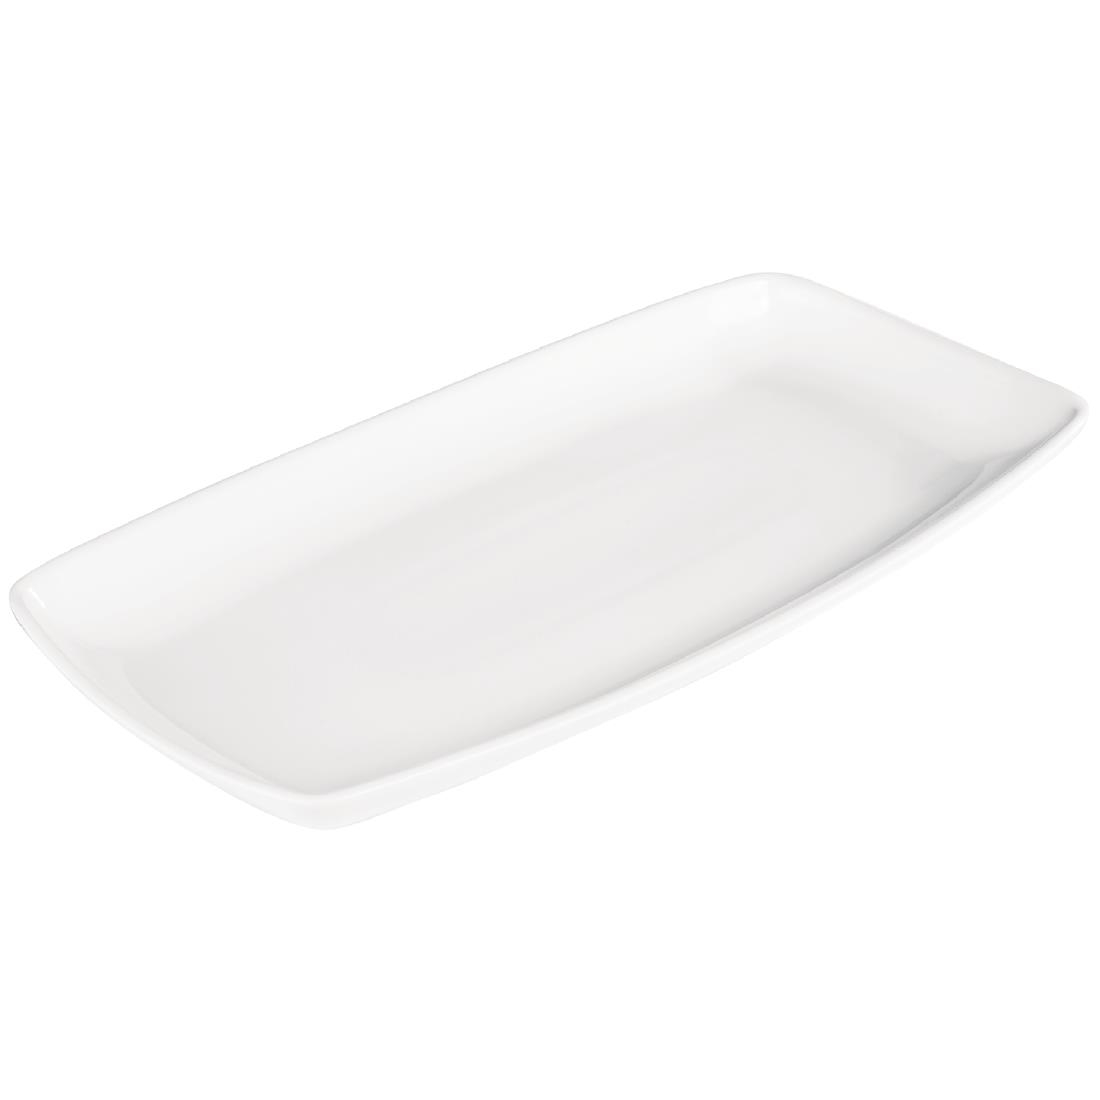 Churchill X Squared Oblong Plates 197x 102mm (Pack of 12) (DP231)